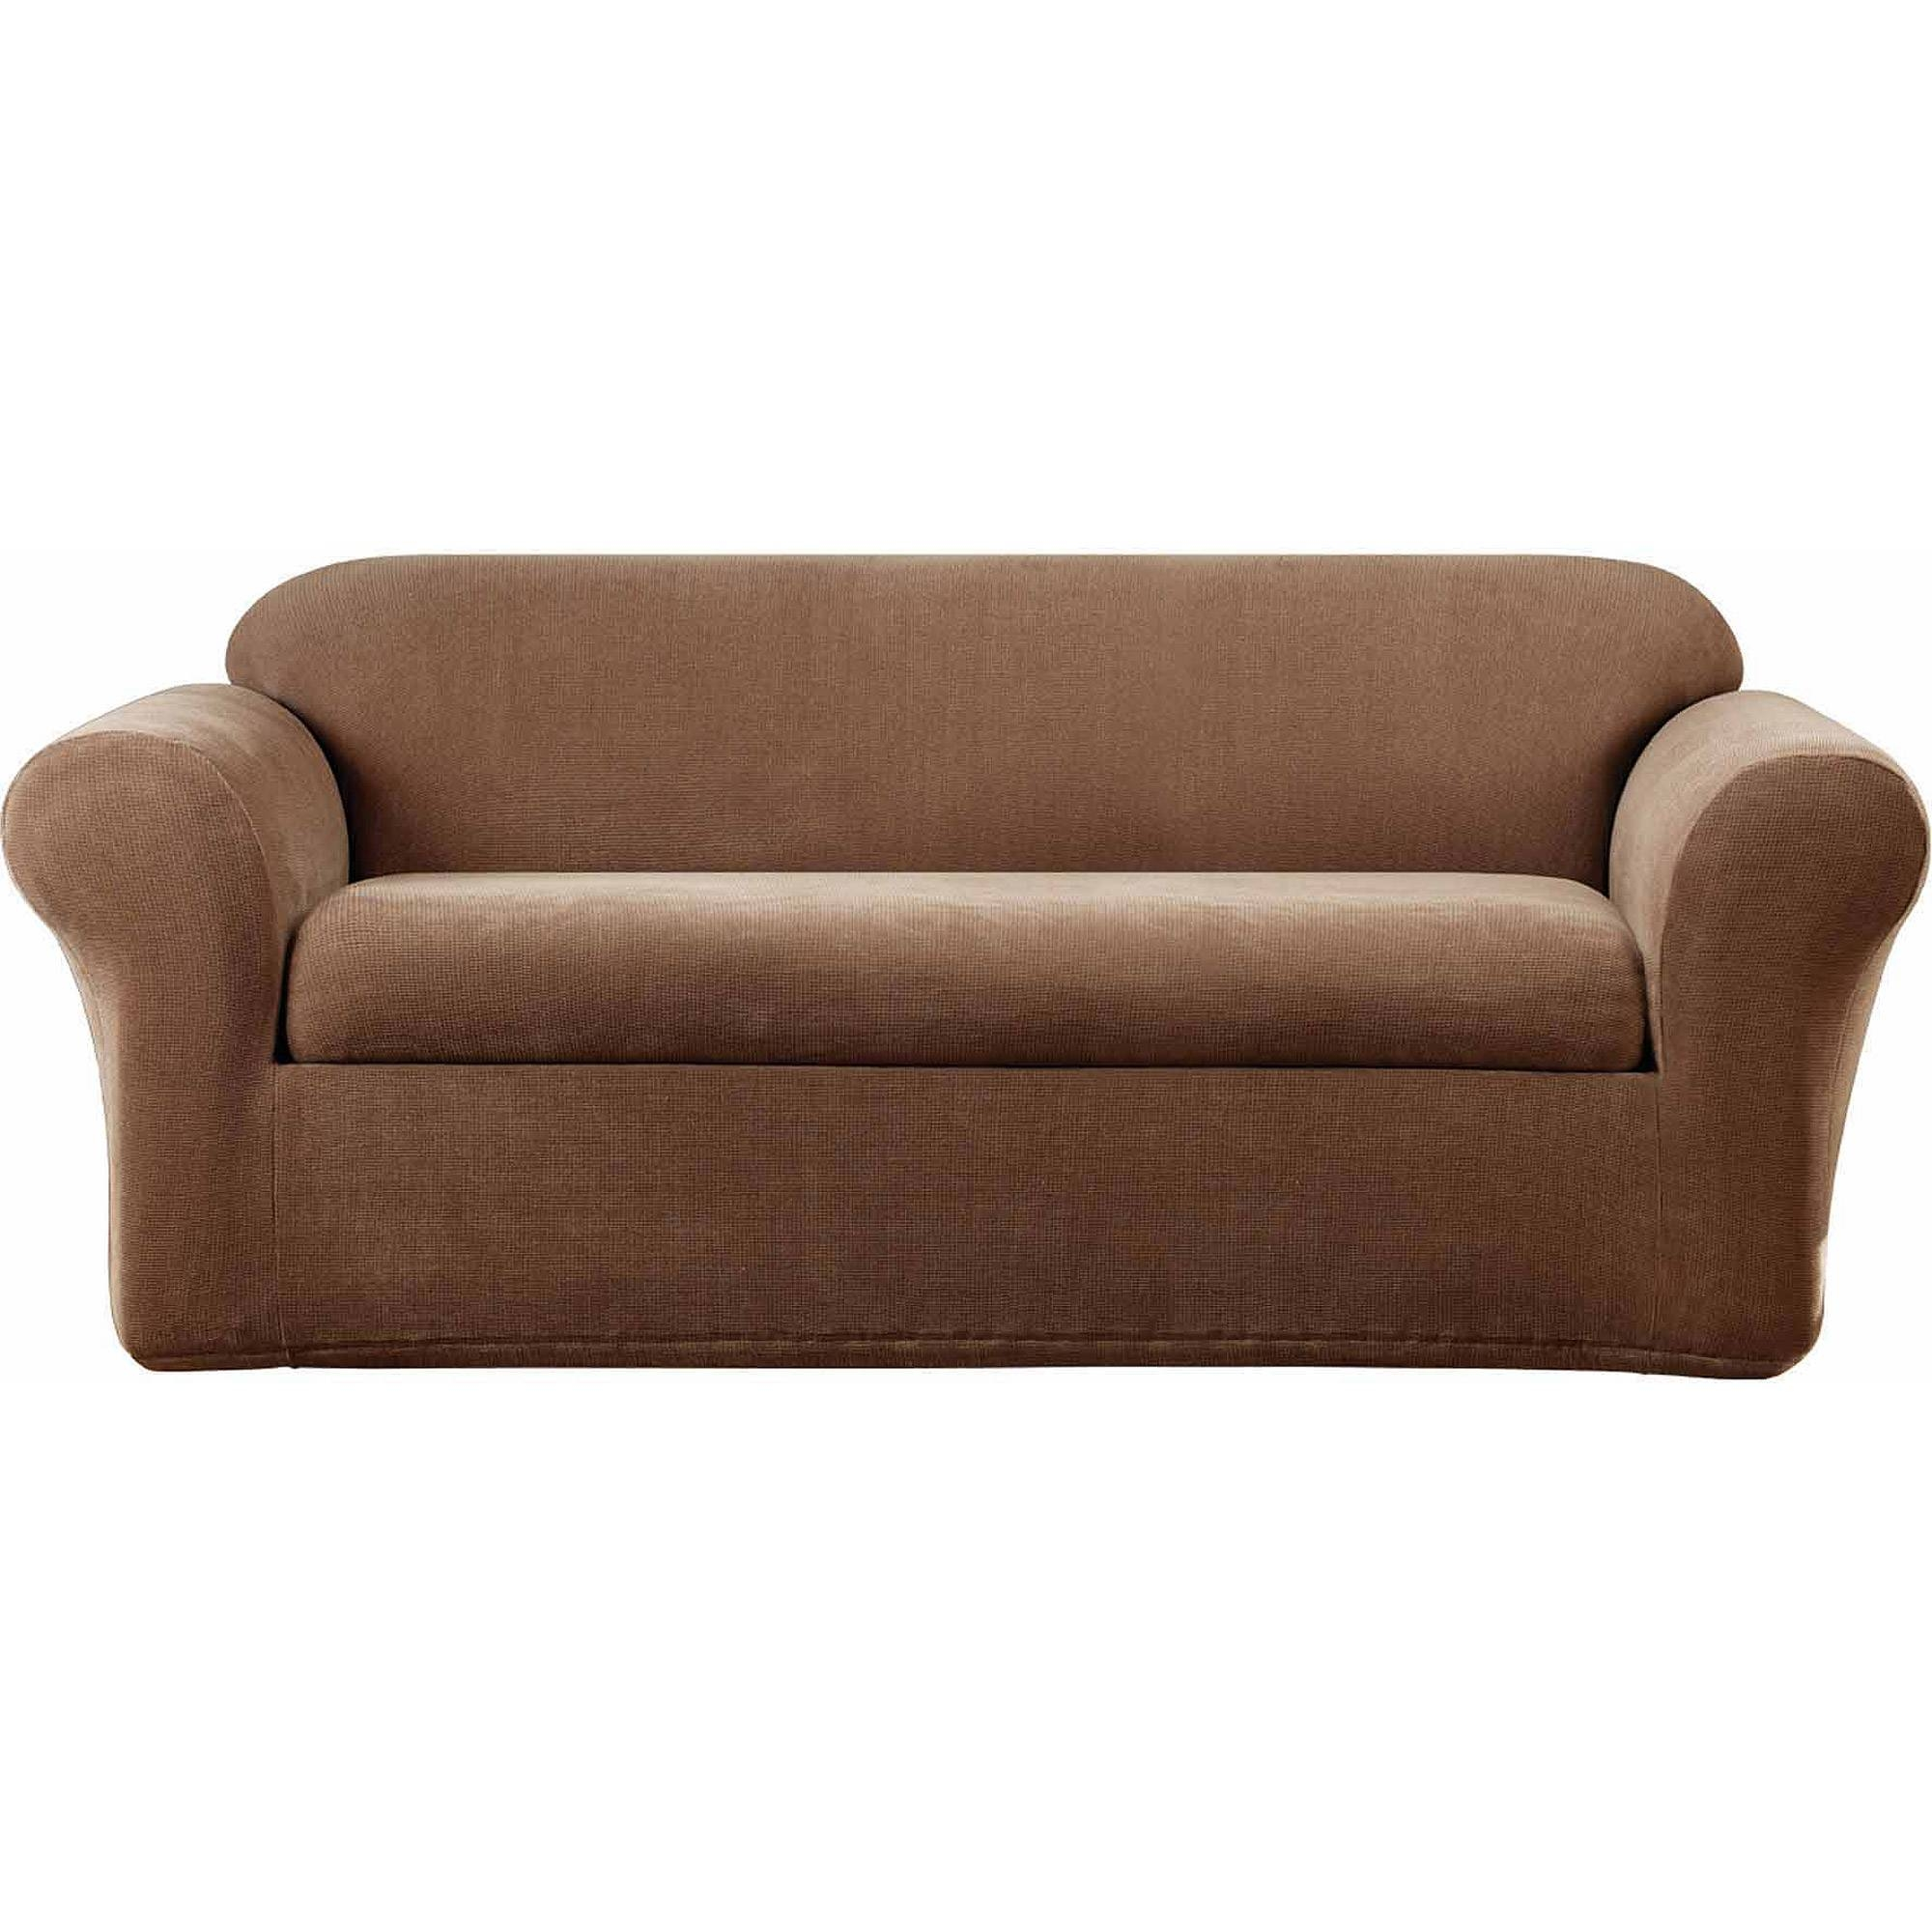 Sure Fit Stretch Metro Separate Seat Sofa Slipcover - Walmart with 2 Piece Sofa Covers (Image 23 of 30)